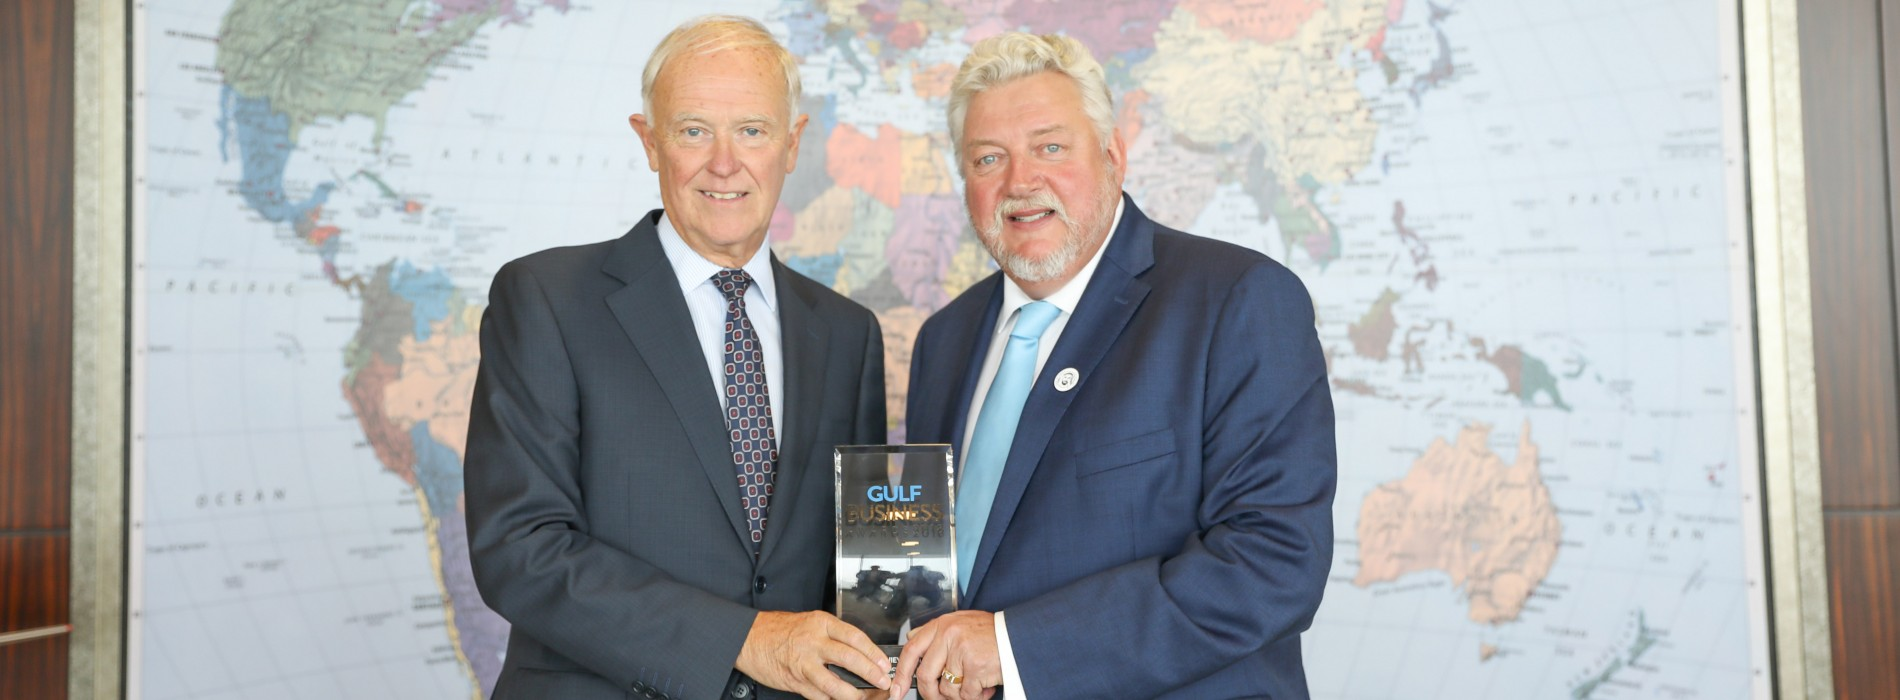 Sir Tim Clark named Aviation and Transport Business Leader of the Year at the Gulf Business Awards 2018